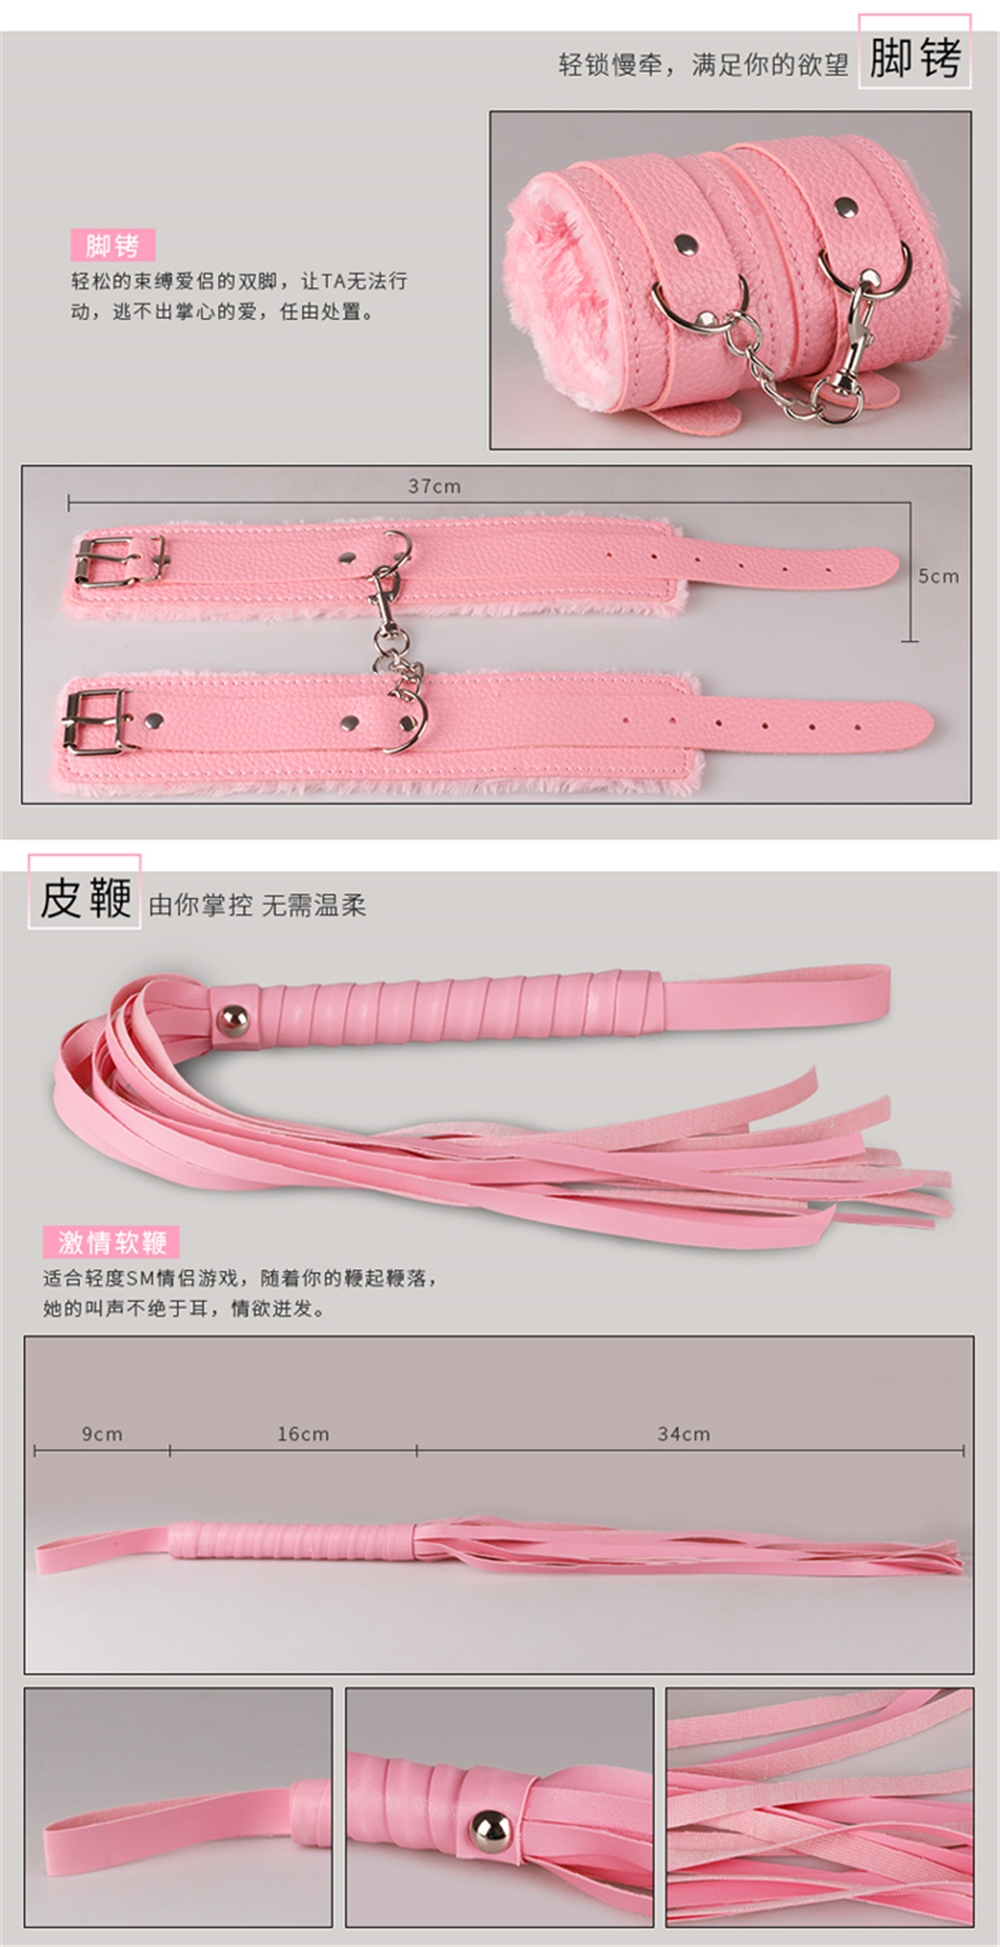 Sex Bondage Kit Set 10 Pcs Sexy Product Set Adult Games Toys Set Hand Cuffs Footcuff Whip Rope Blindfold Couples Erotic Toys 10